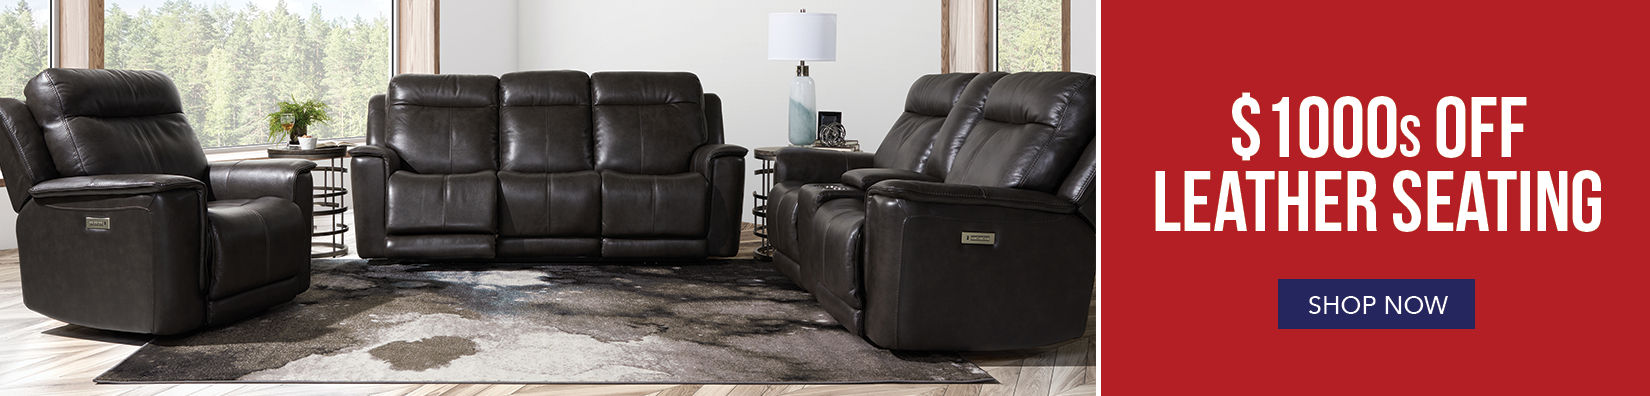 Living room with black leather reclining furniture and various accessories